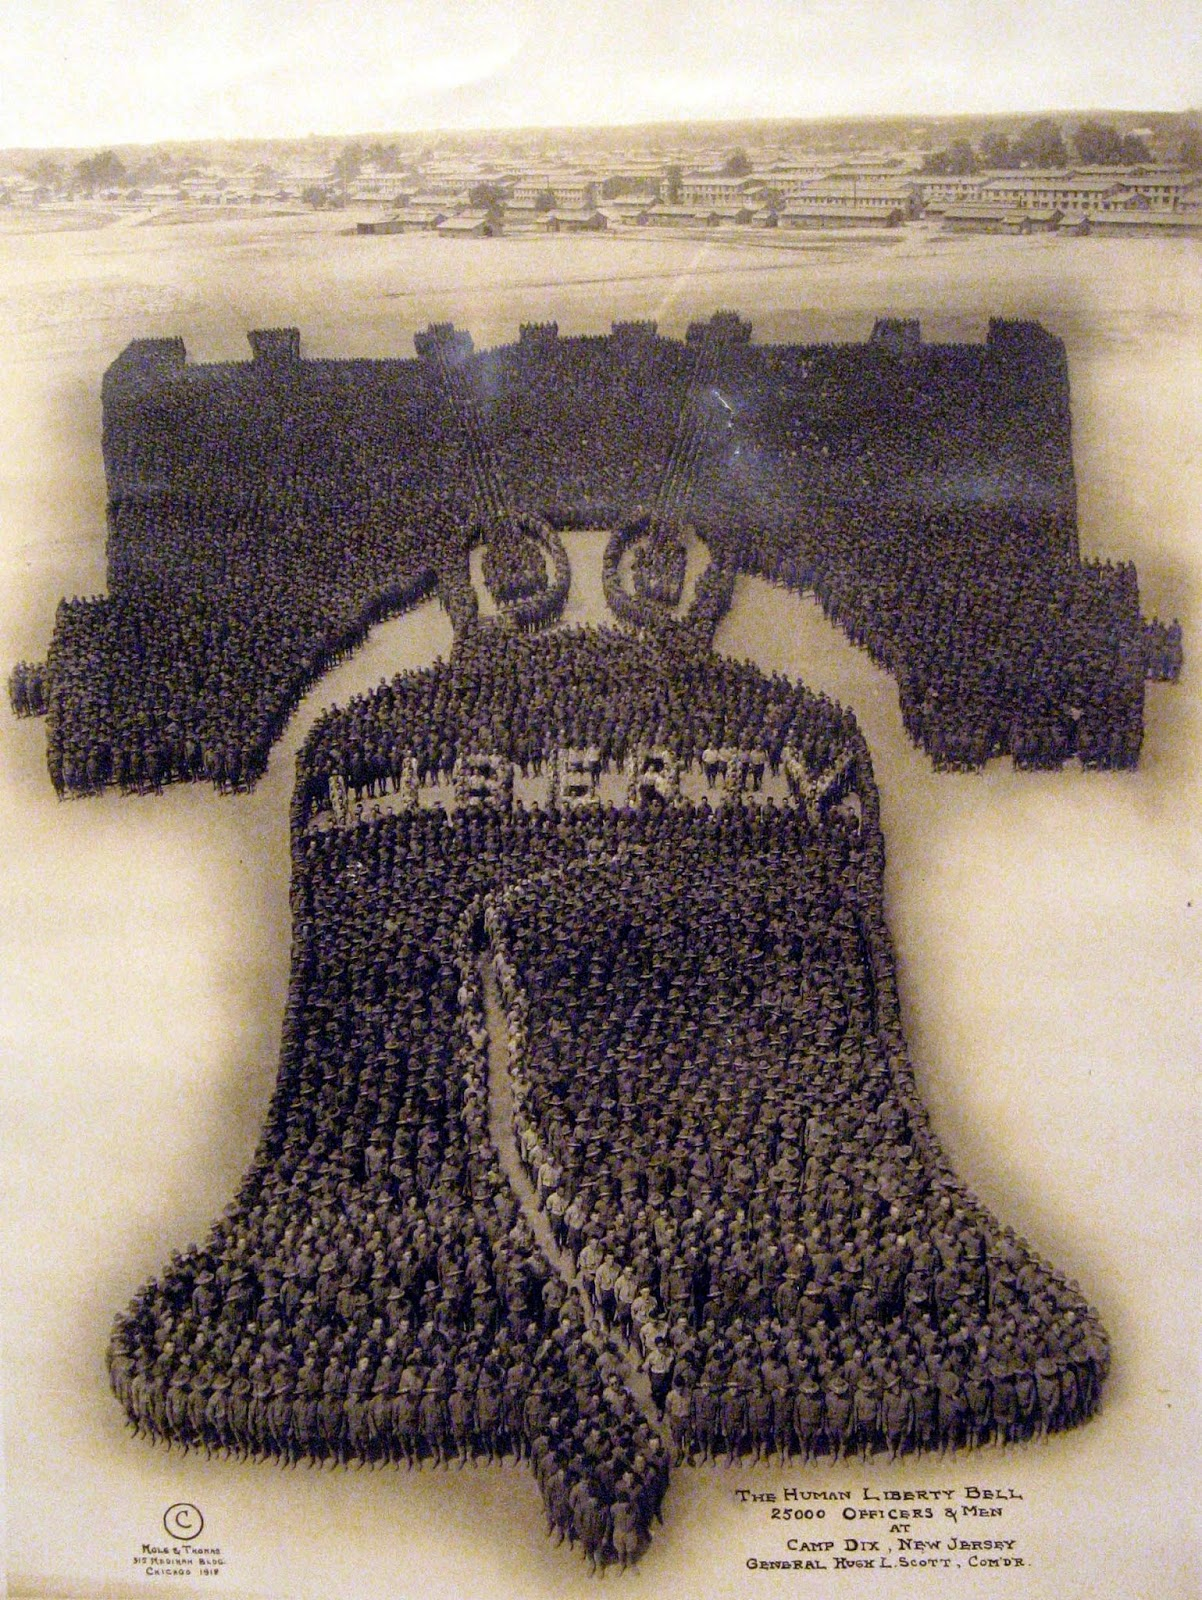 The Human Liberty Bell, 1918, Camp Dix New Jersy, 25,000 officers and men